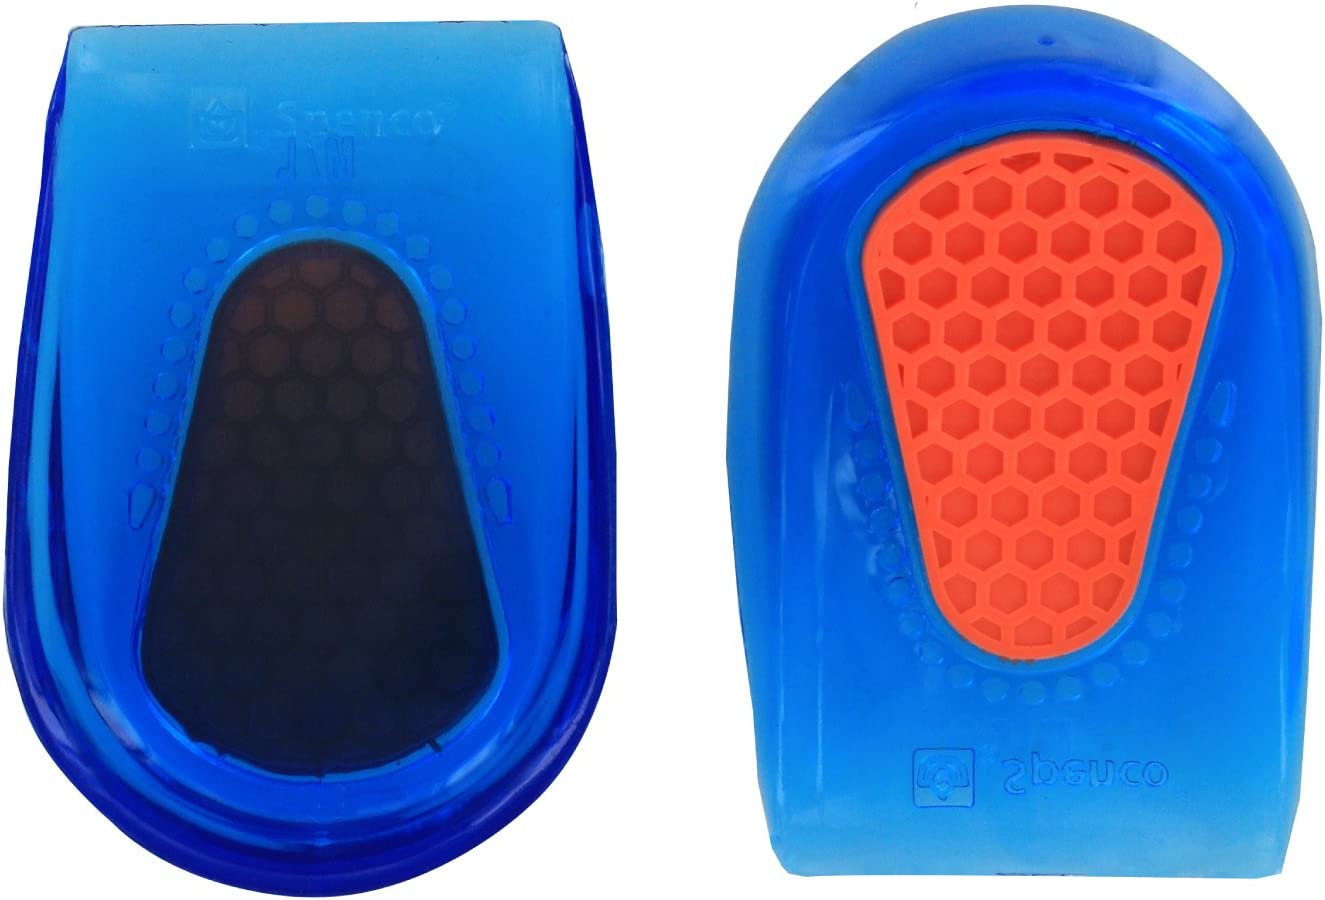 Spenco Gel Heel Cup Shoe Inserts for Relief Spurs New products, world's highest quality popular! from Pain Sales results No. 1